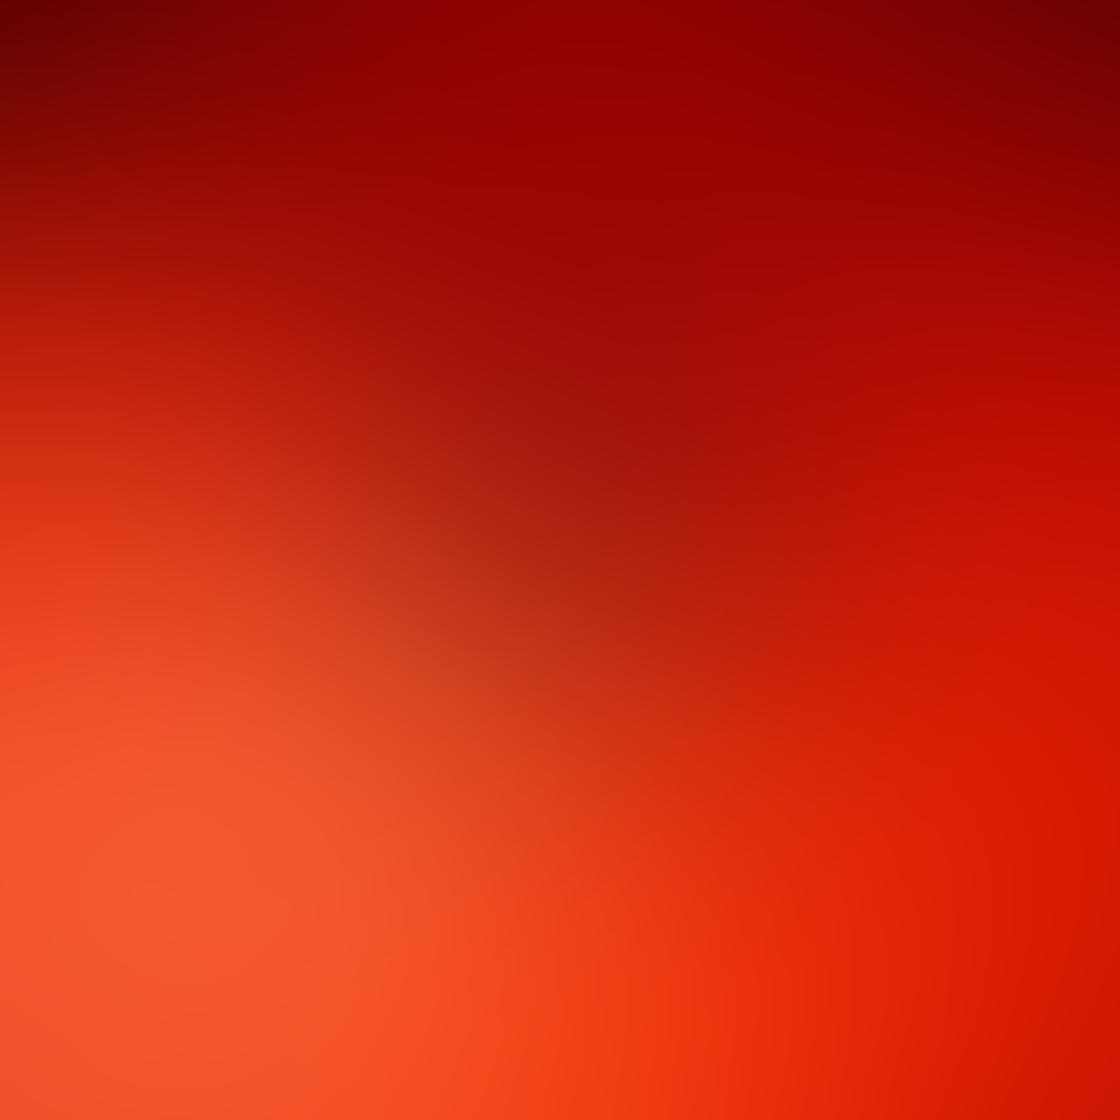 Abstract iPhone Photos 101